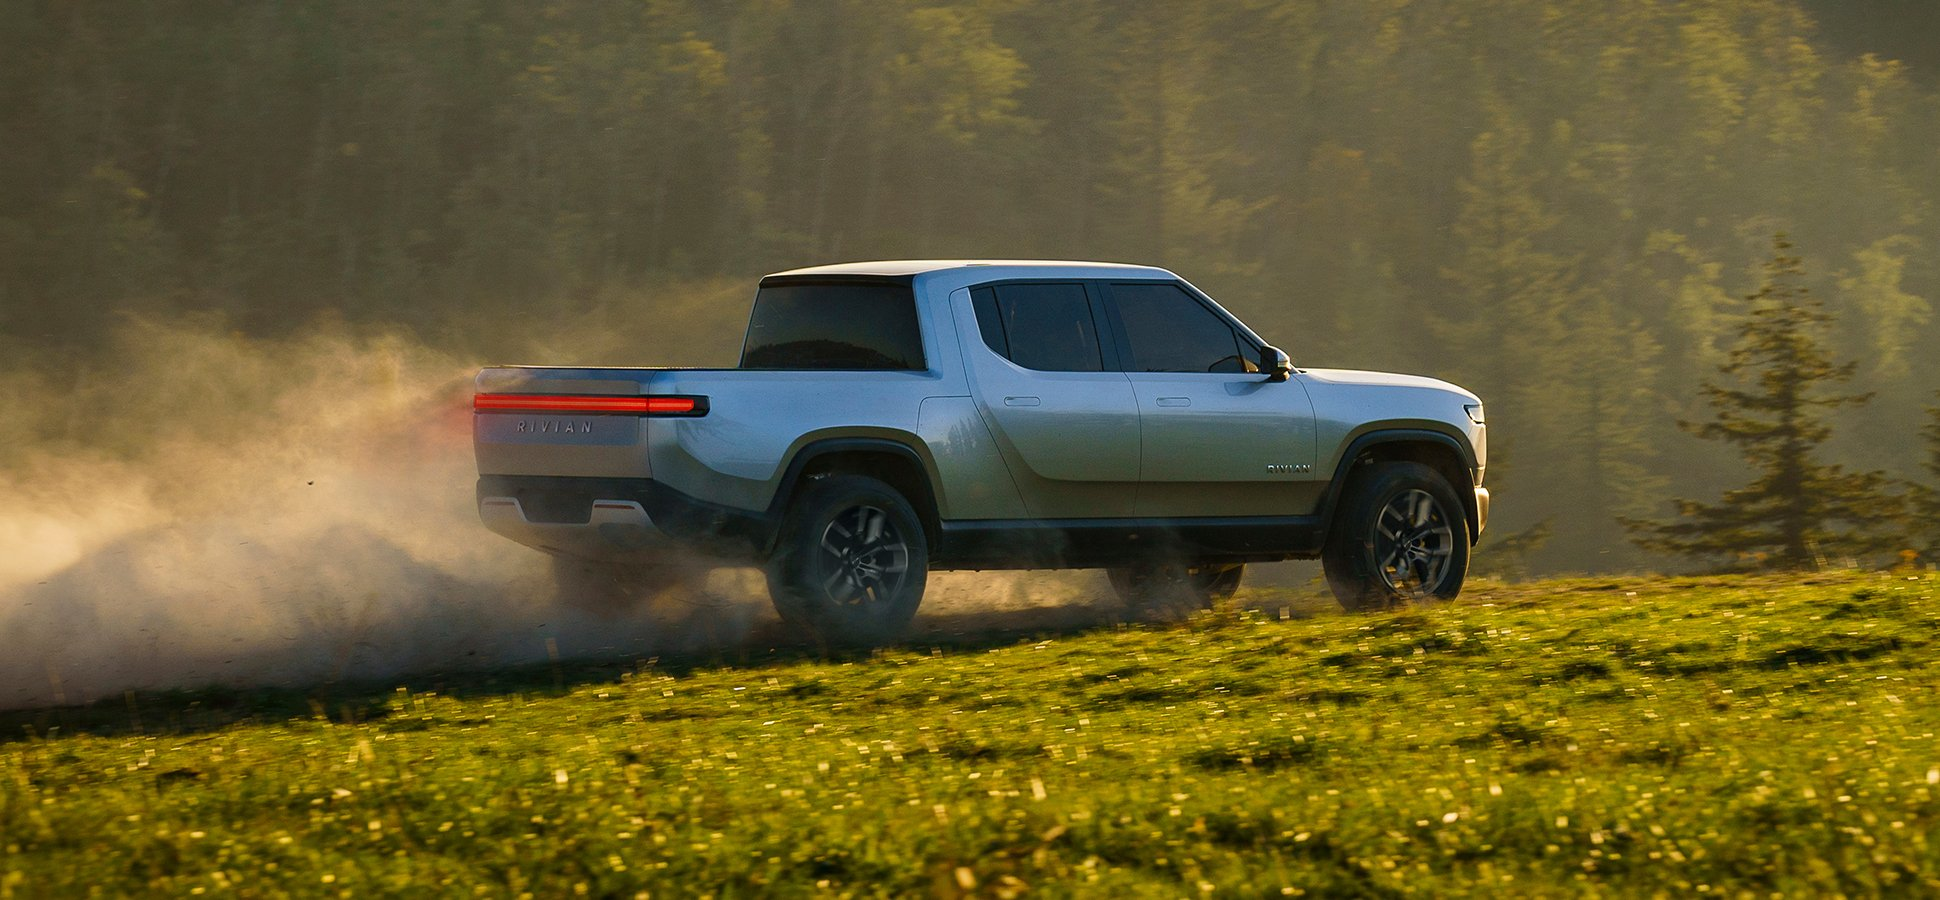 This Secretive Company Has 500 Million In Funding To Make Electric Pickup Trucks